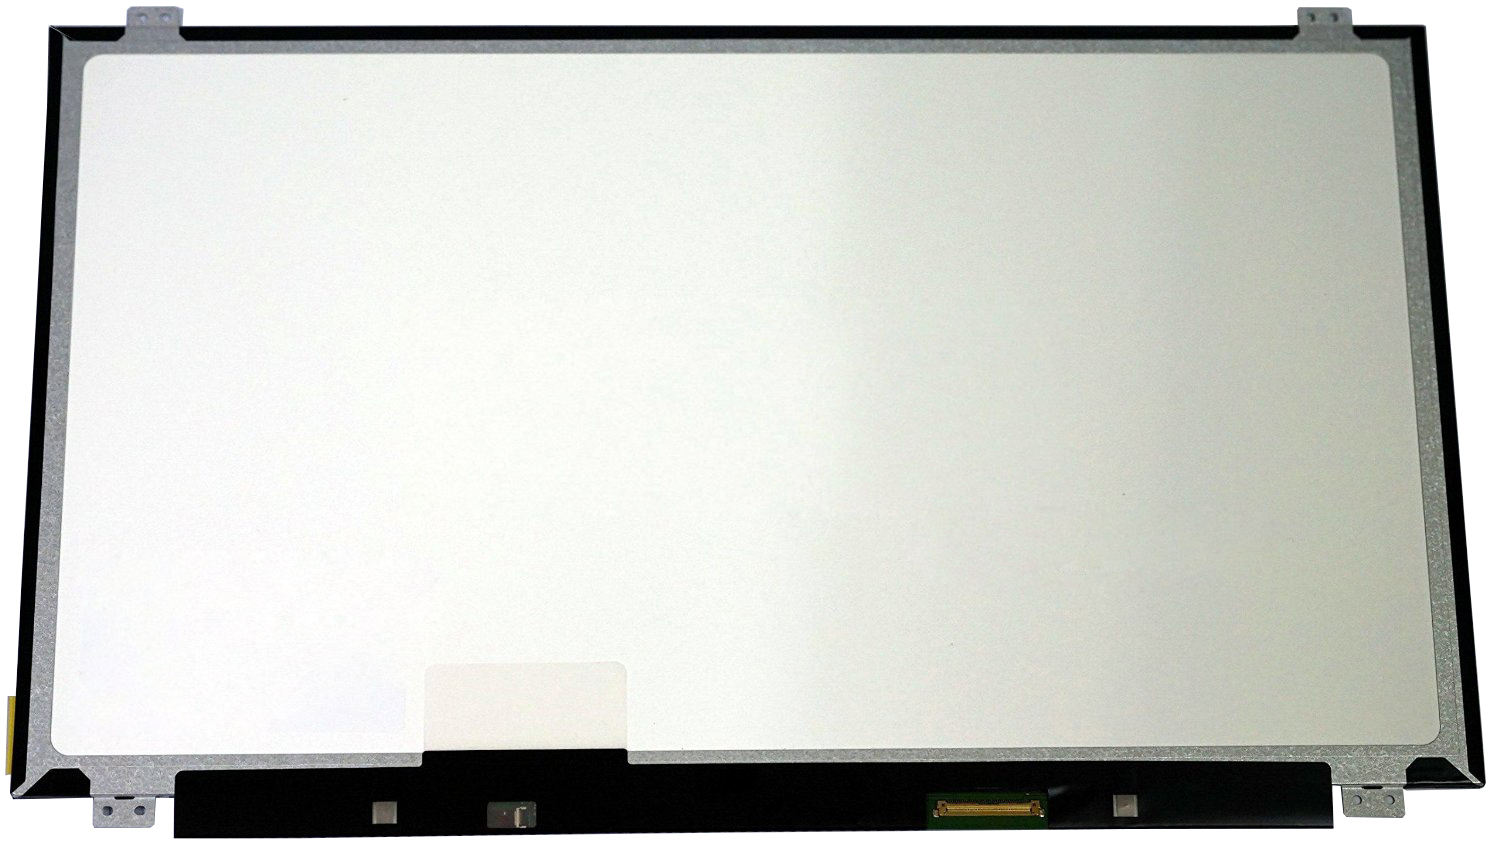 QuYing Laptop LCD Screen for Acer ASPIRE V5-123 SERIES (11.6 inch 1366x768 30pin Top and Bottom Brackets N) quying laptop lcd screen for acer aspire ethos 5951g timeline 5745 7531 series 15 6 inch 1366x768 40pin n